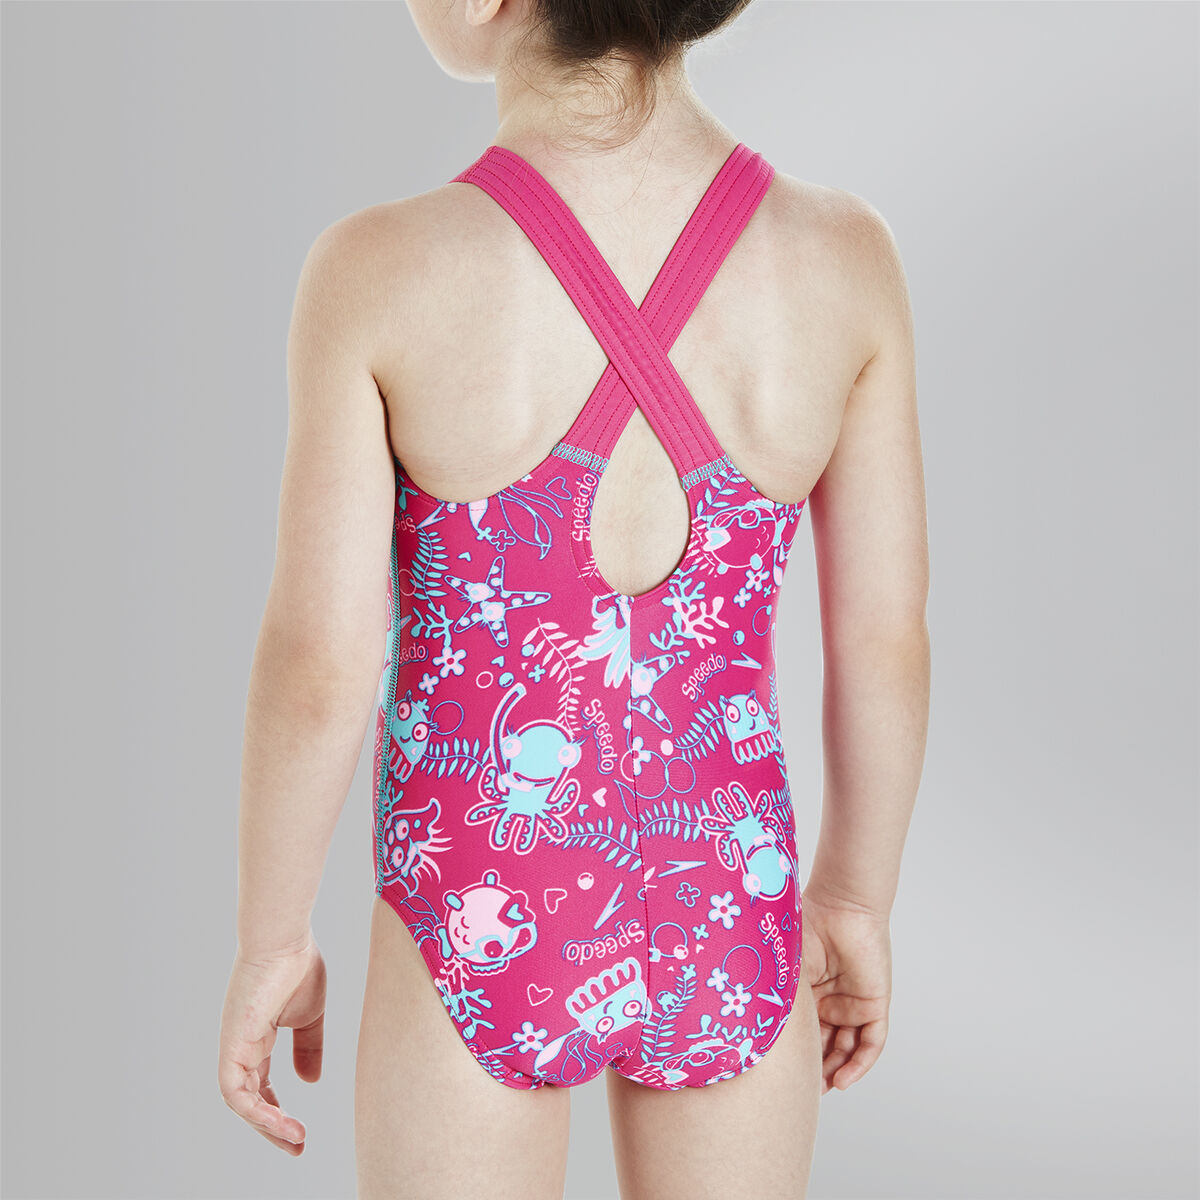 Seasquad Allover Swimsuit